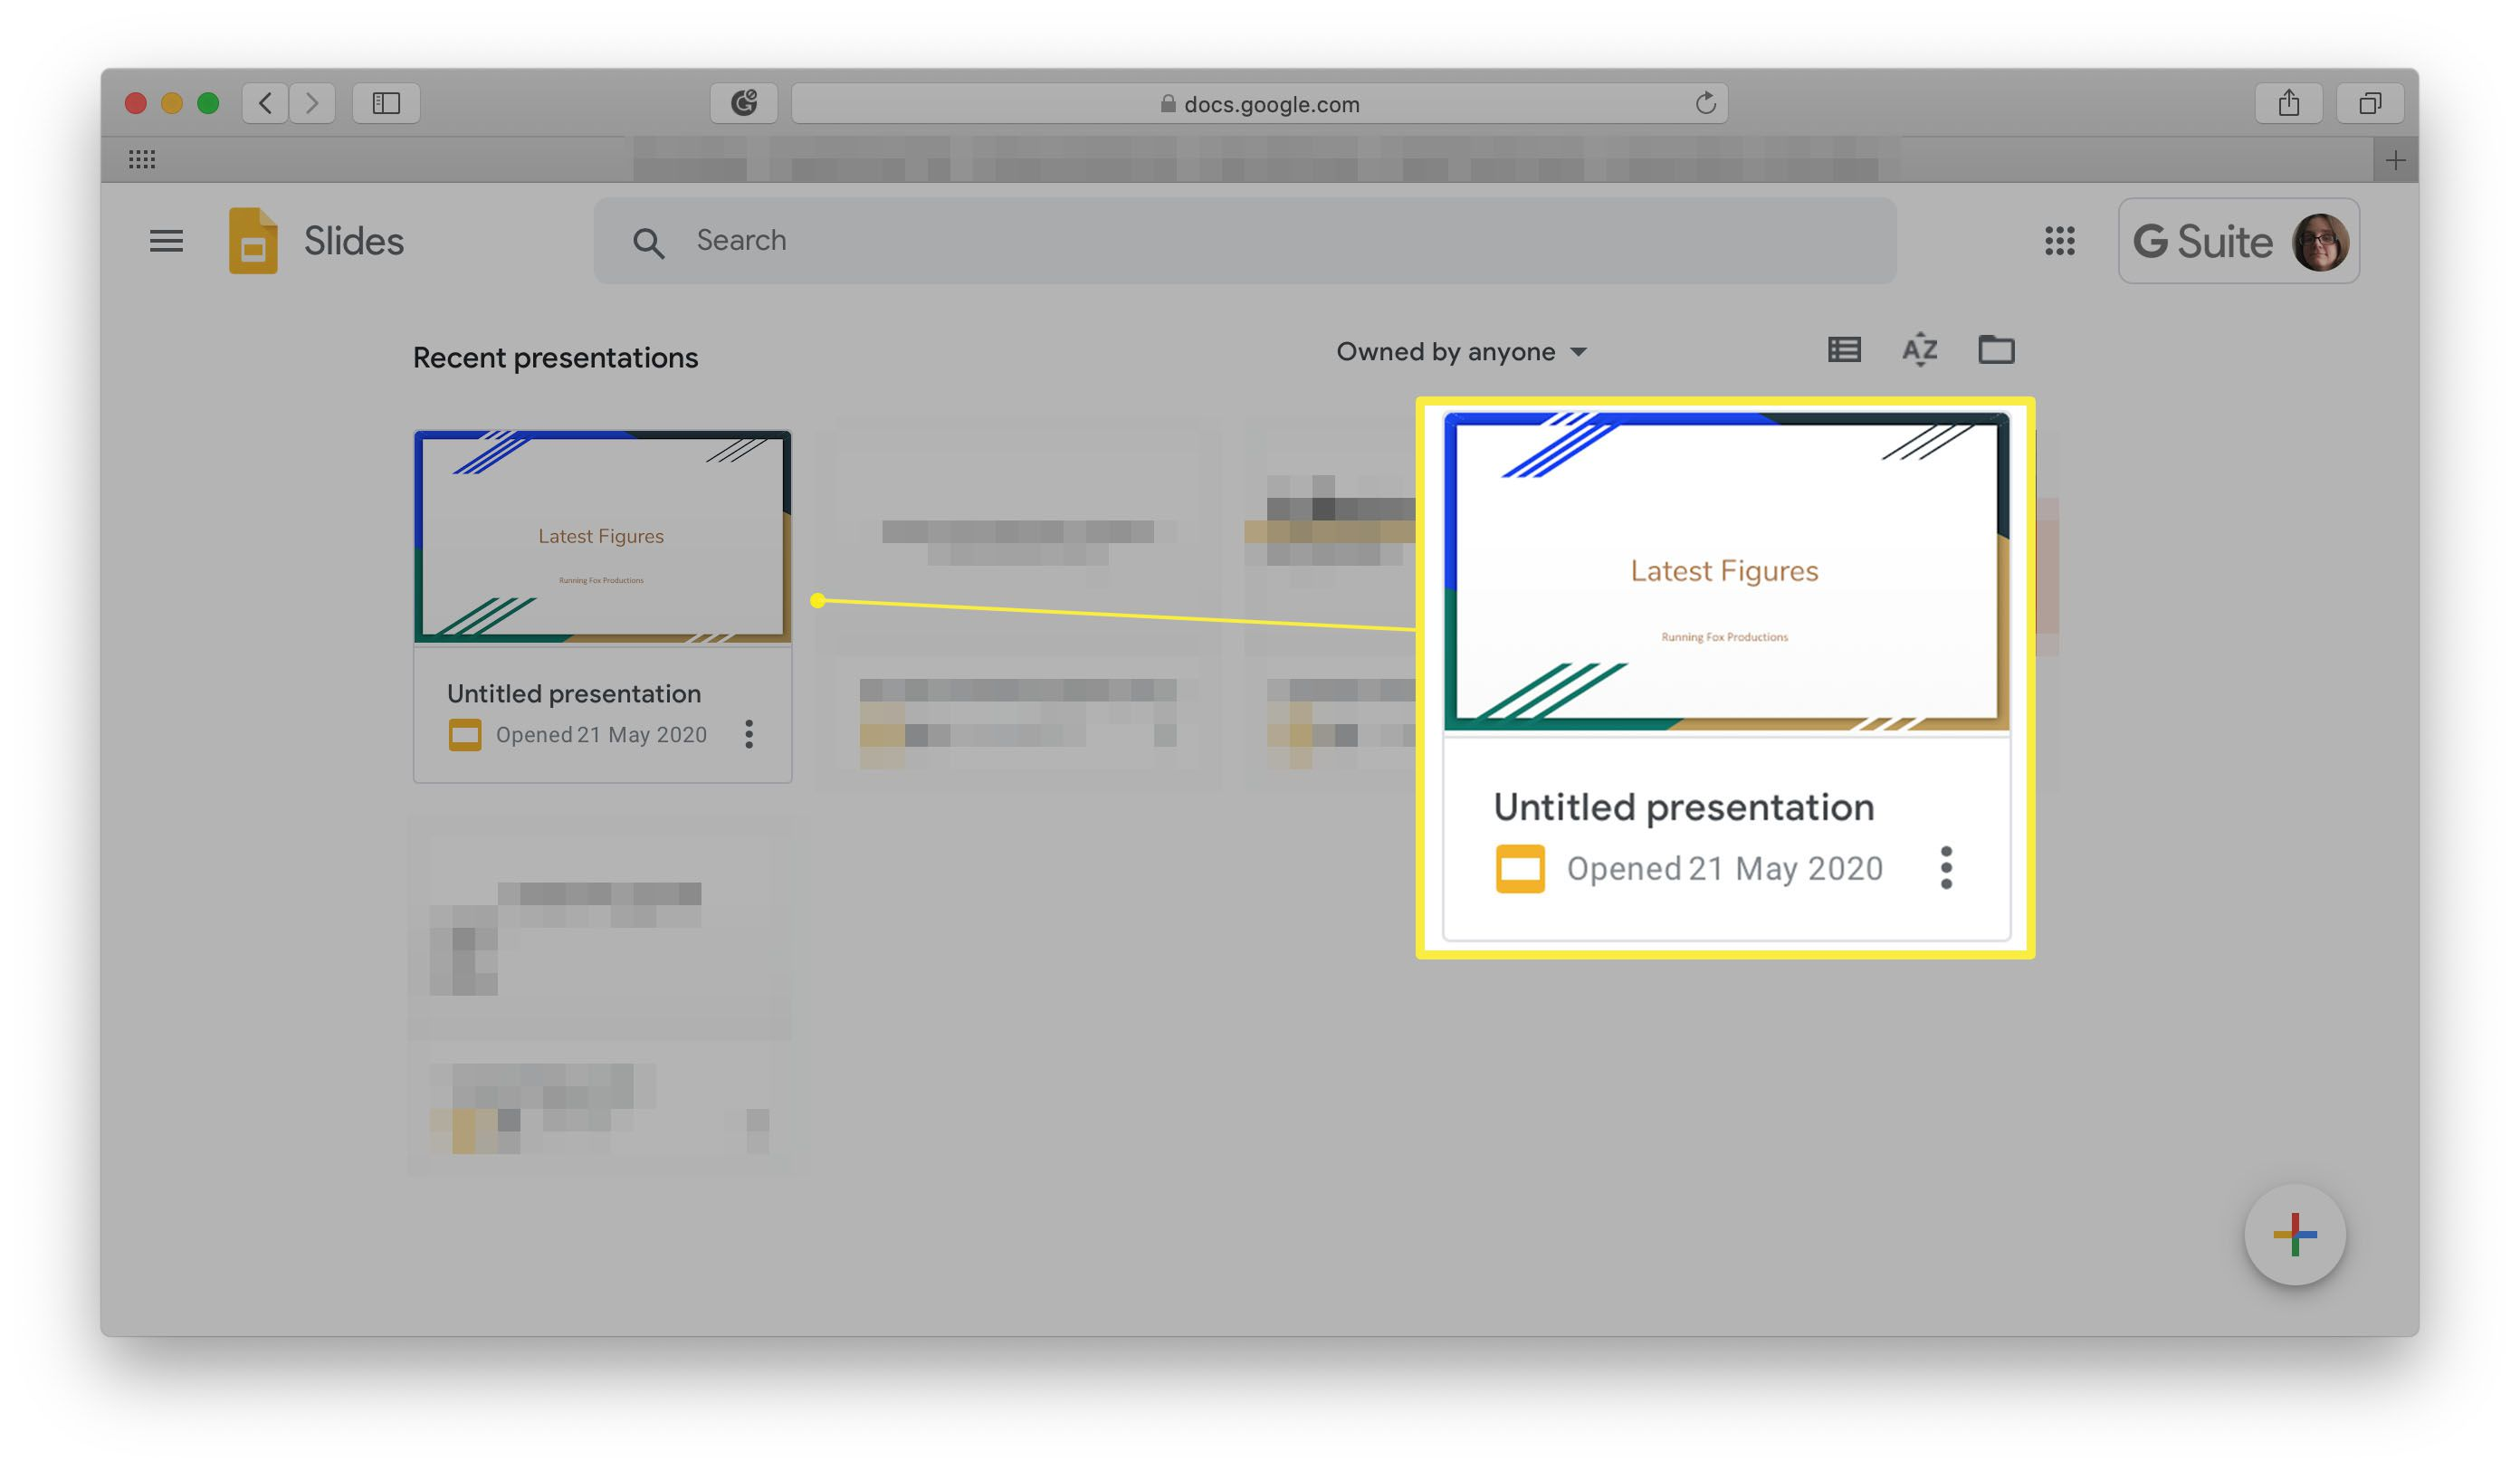 Google Slides with Recent presentations highlighted